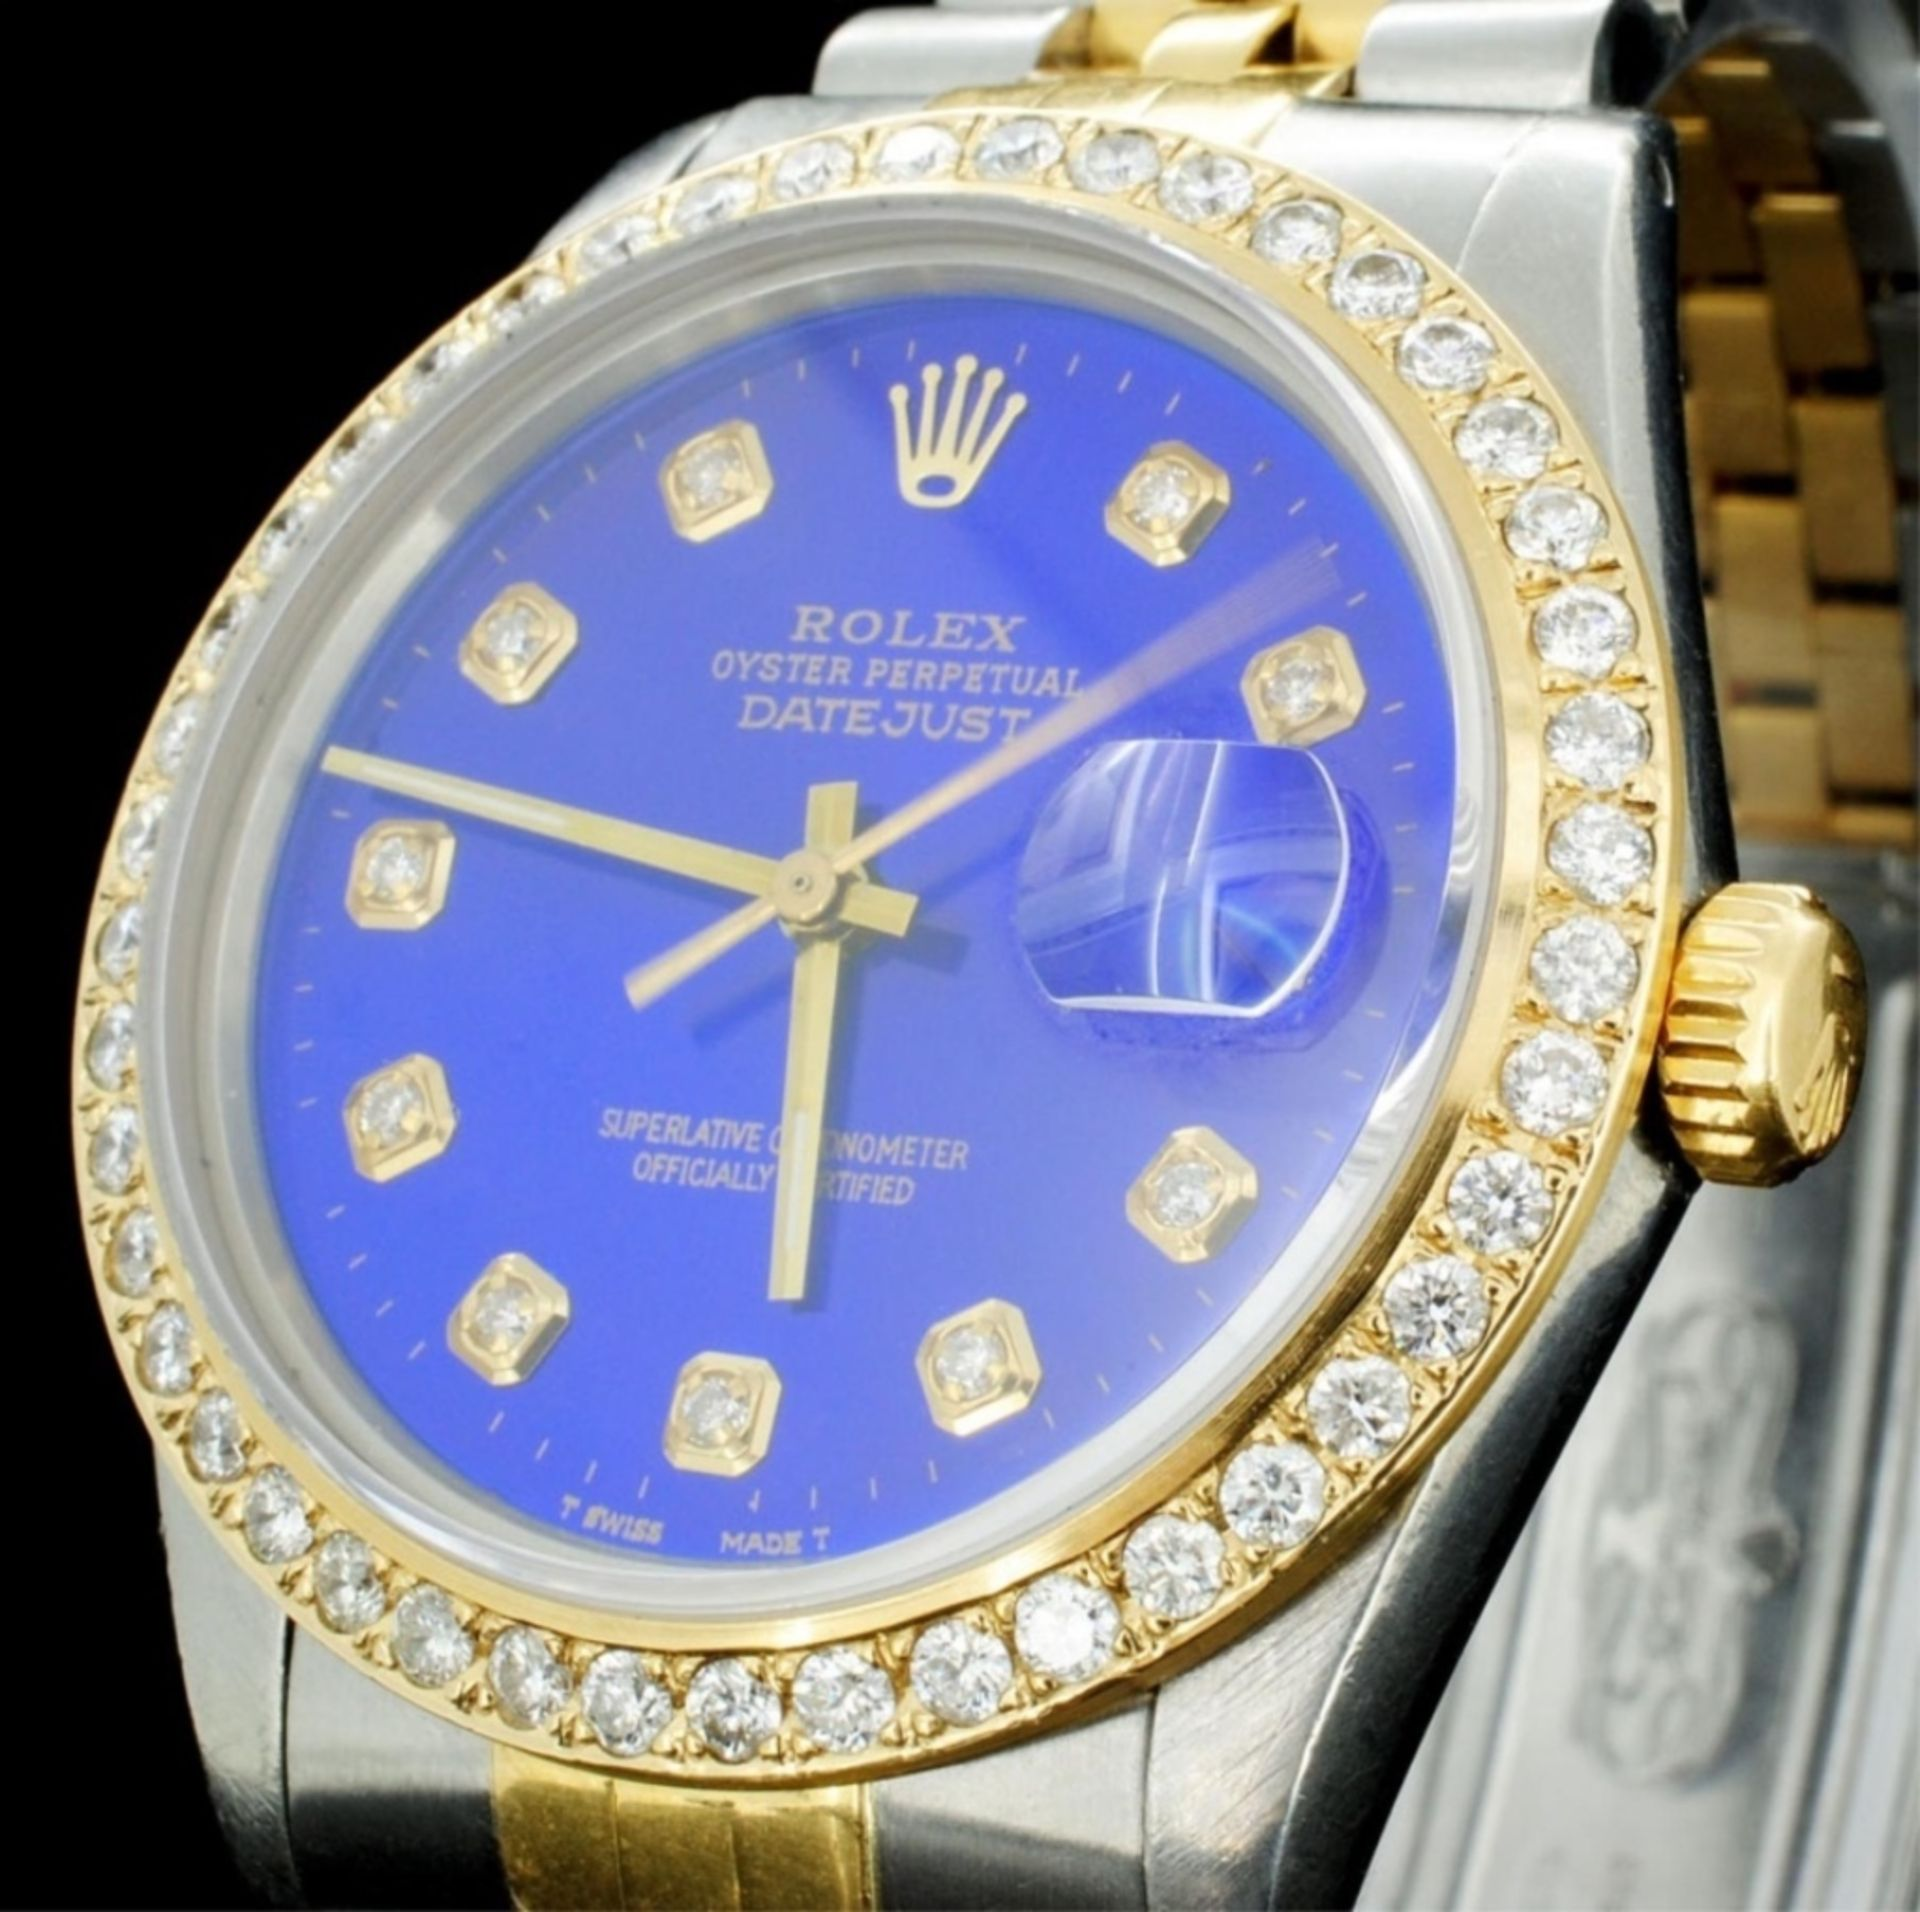 Rolex YG/SS DateJust Diamond 36MM Watch - Image 2 of 6